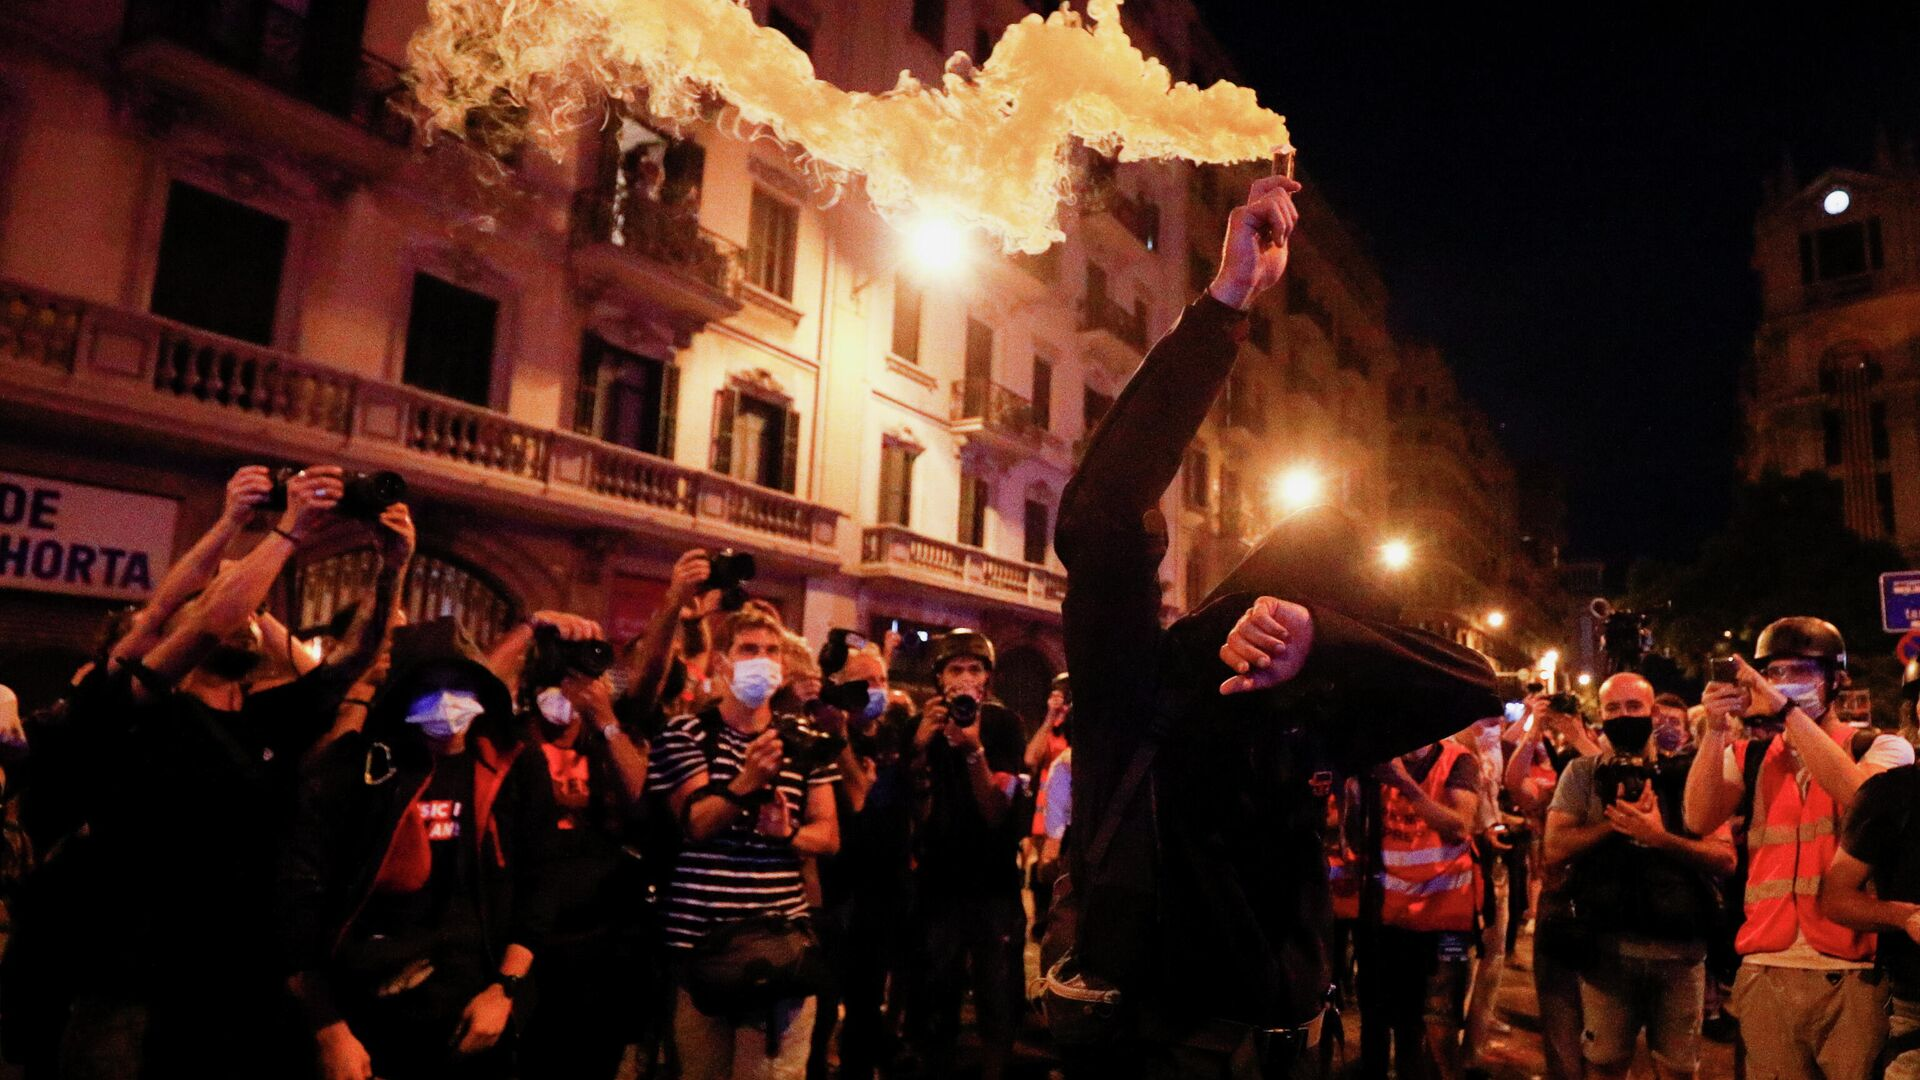 A person holds a smoke bomb during Catalonia's national day 'La Diada' in Barcelona, Spain, September 11, 2021. - Sputnik International, 1920, 12.09.2021